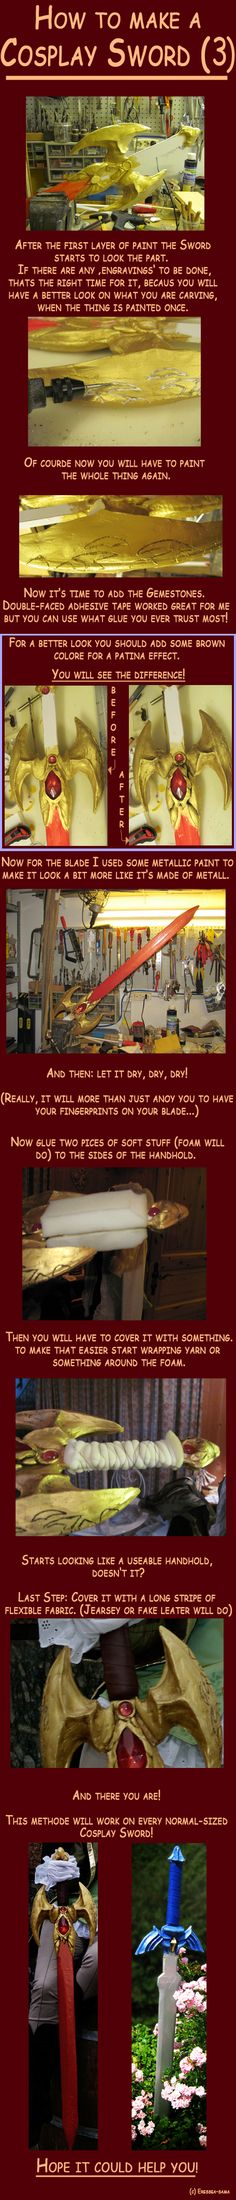 DIY How to make a Cosplay Sword 3 by *Eressea-sama on deviantART/// I always wondered about the handle Link Cosplay, Cosplay Diy, Best Cosplay, Cosplay Ideas, Costume Ideas, Cosplay Sword Tutorial, Costume Tutorial, Cosplay Weapons, Good Tutorials